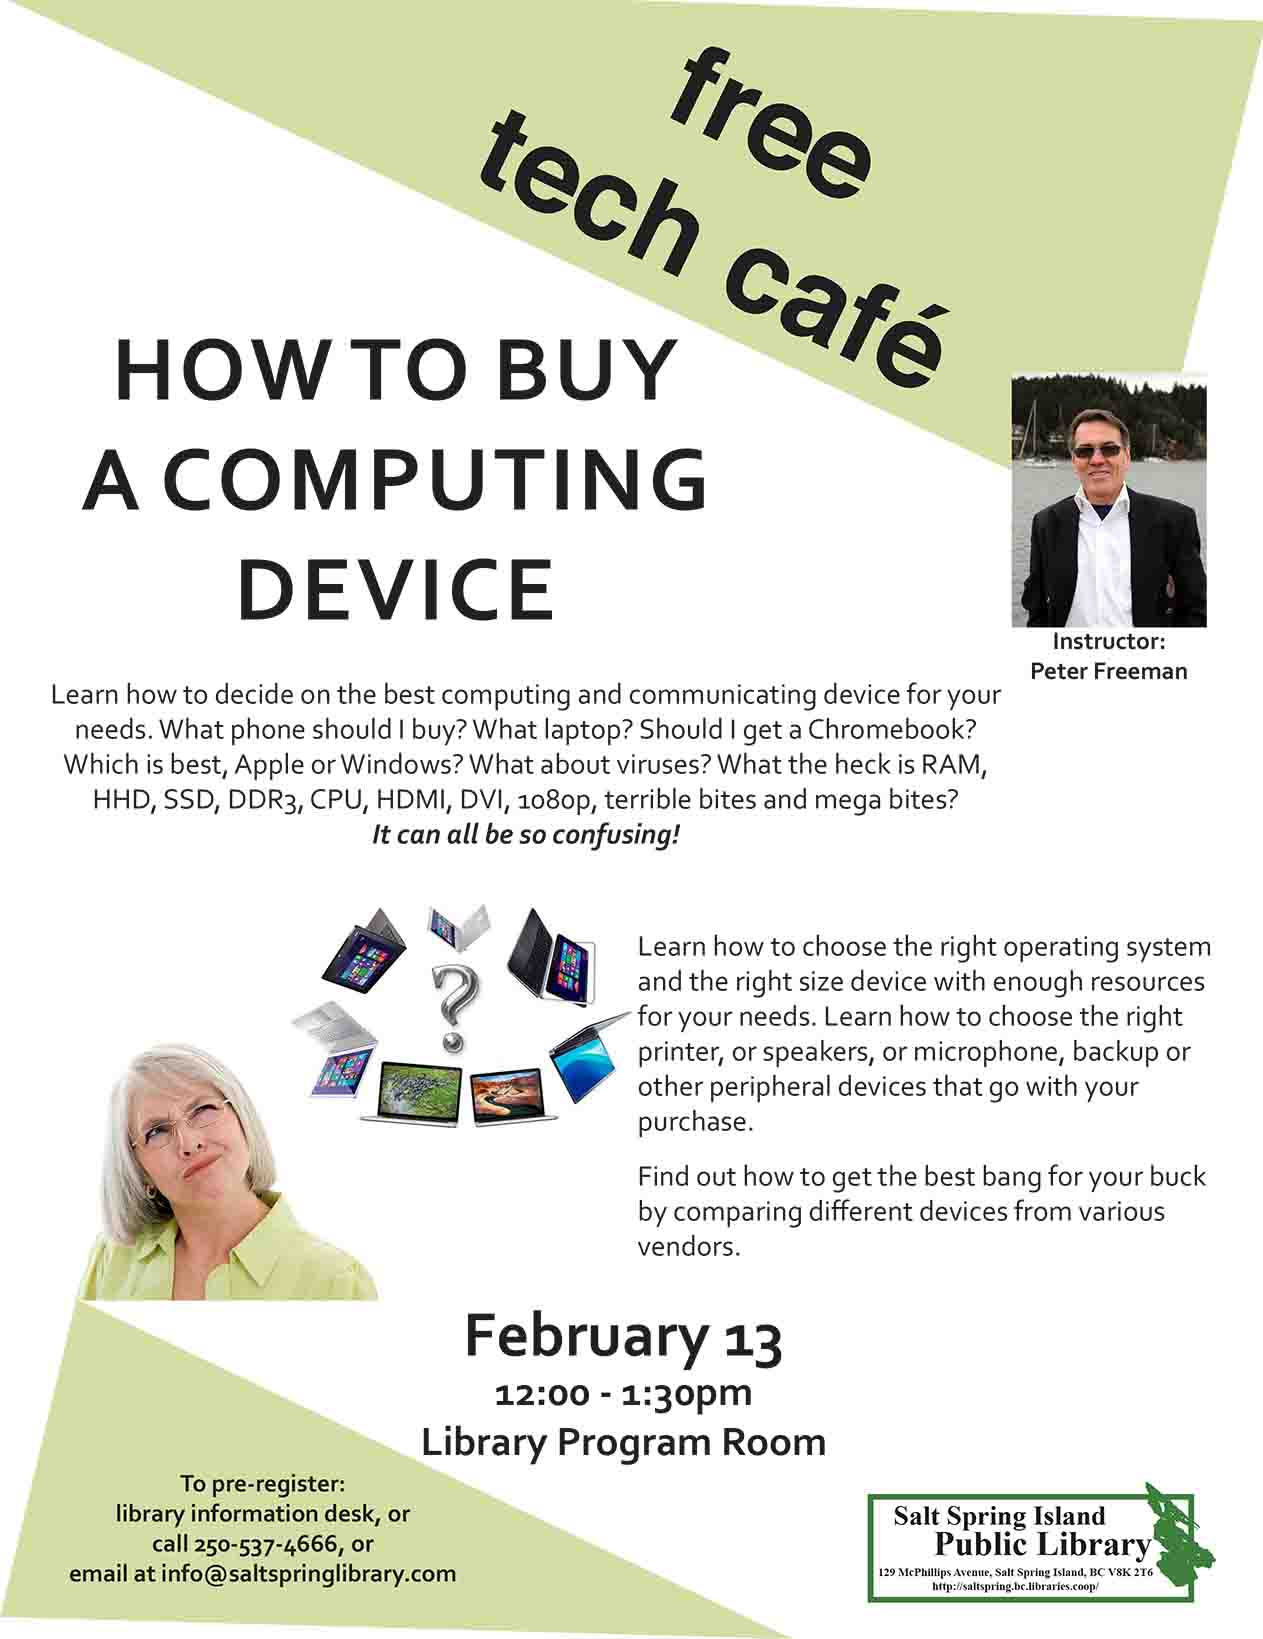 Tech Cafe: How to Buy a Computing Device @ Library Program Room